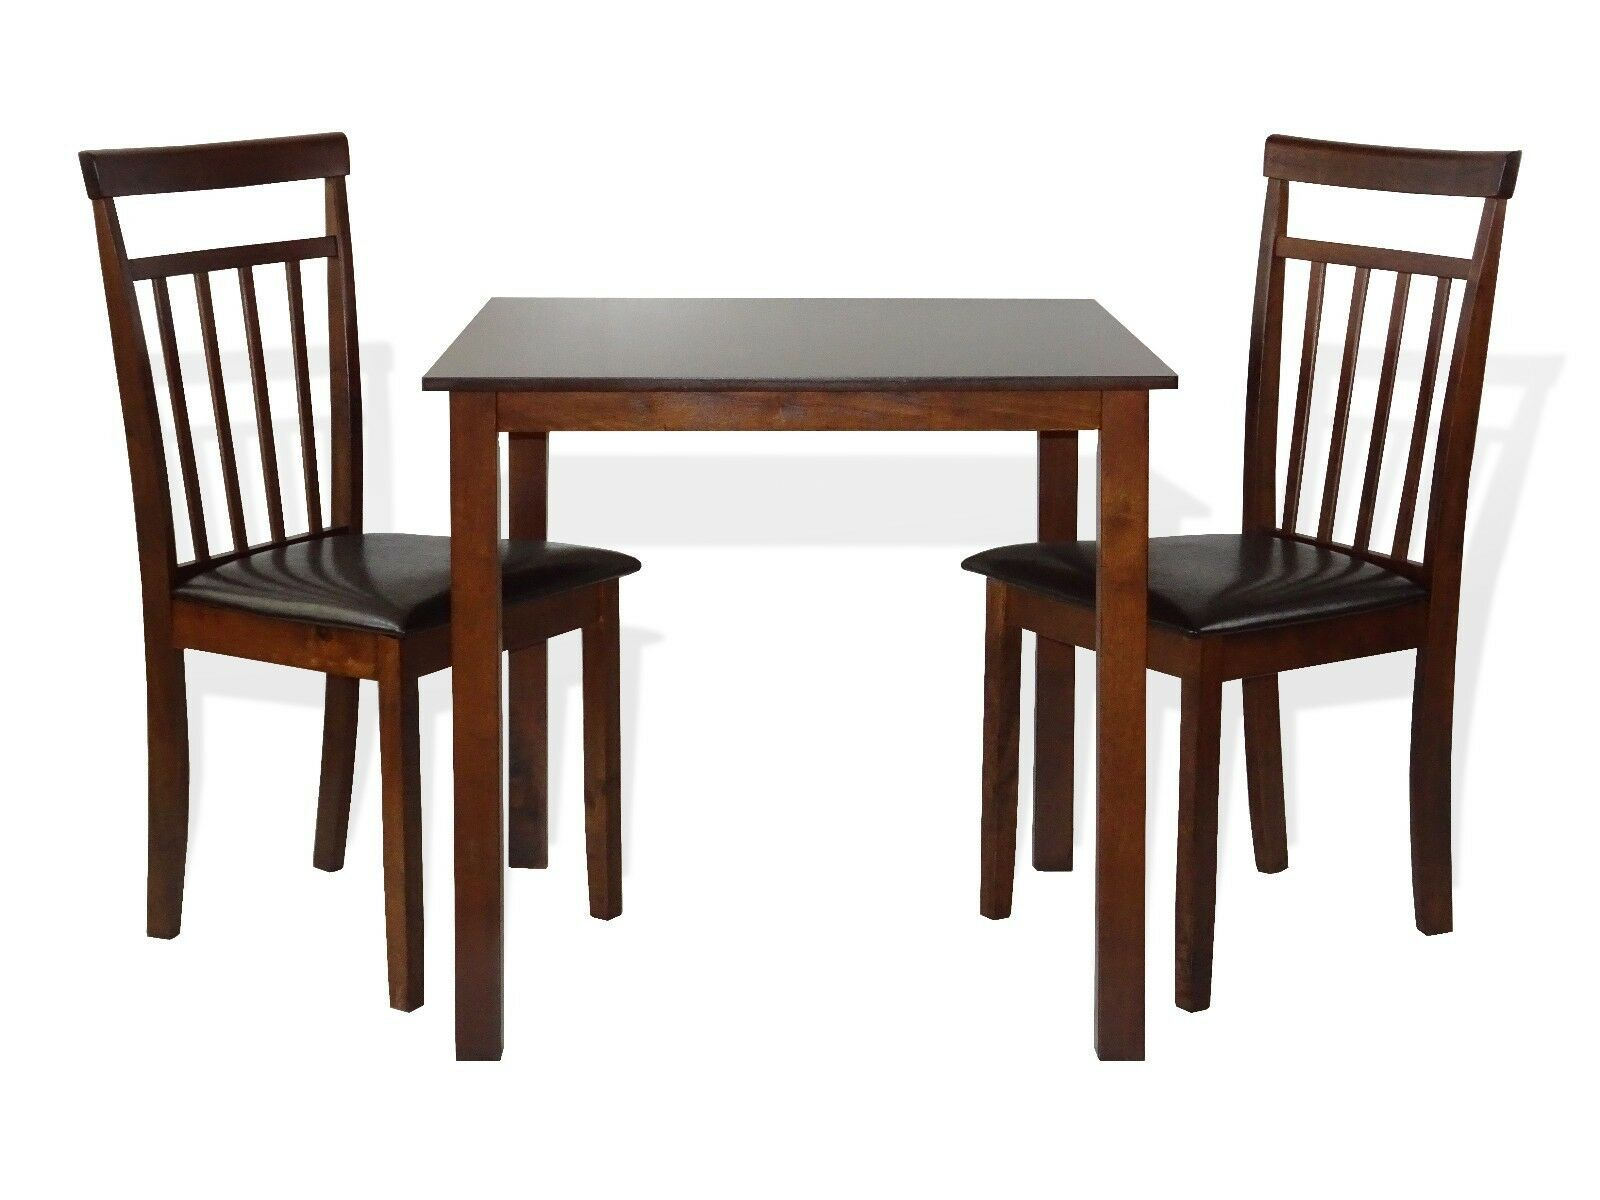 Dining Kitchen 3 Pc Set Square Table 2 Warm Chairs Dark Walnut Dining Table Ideas Of Dining Table Diningtable